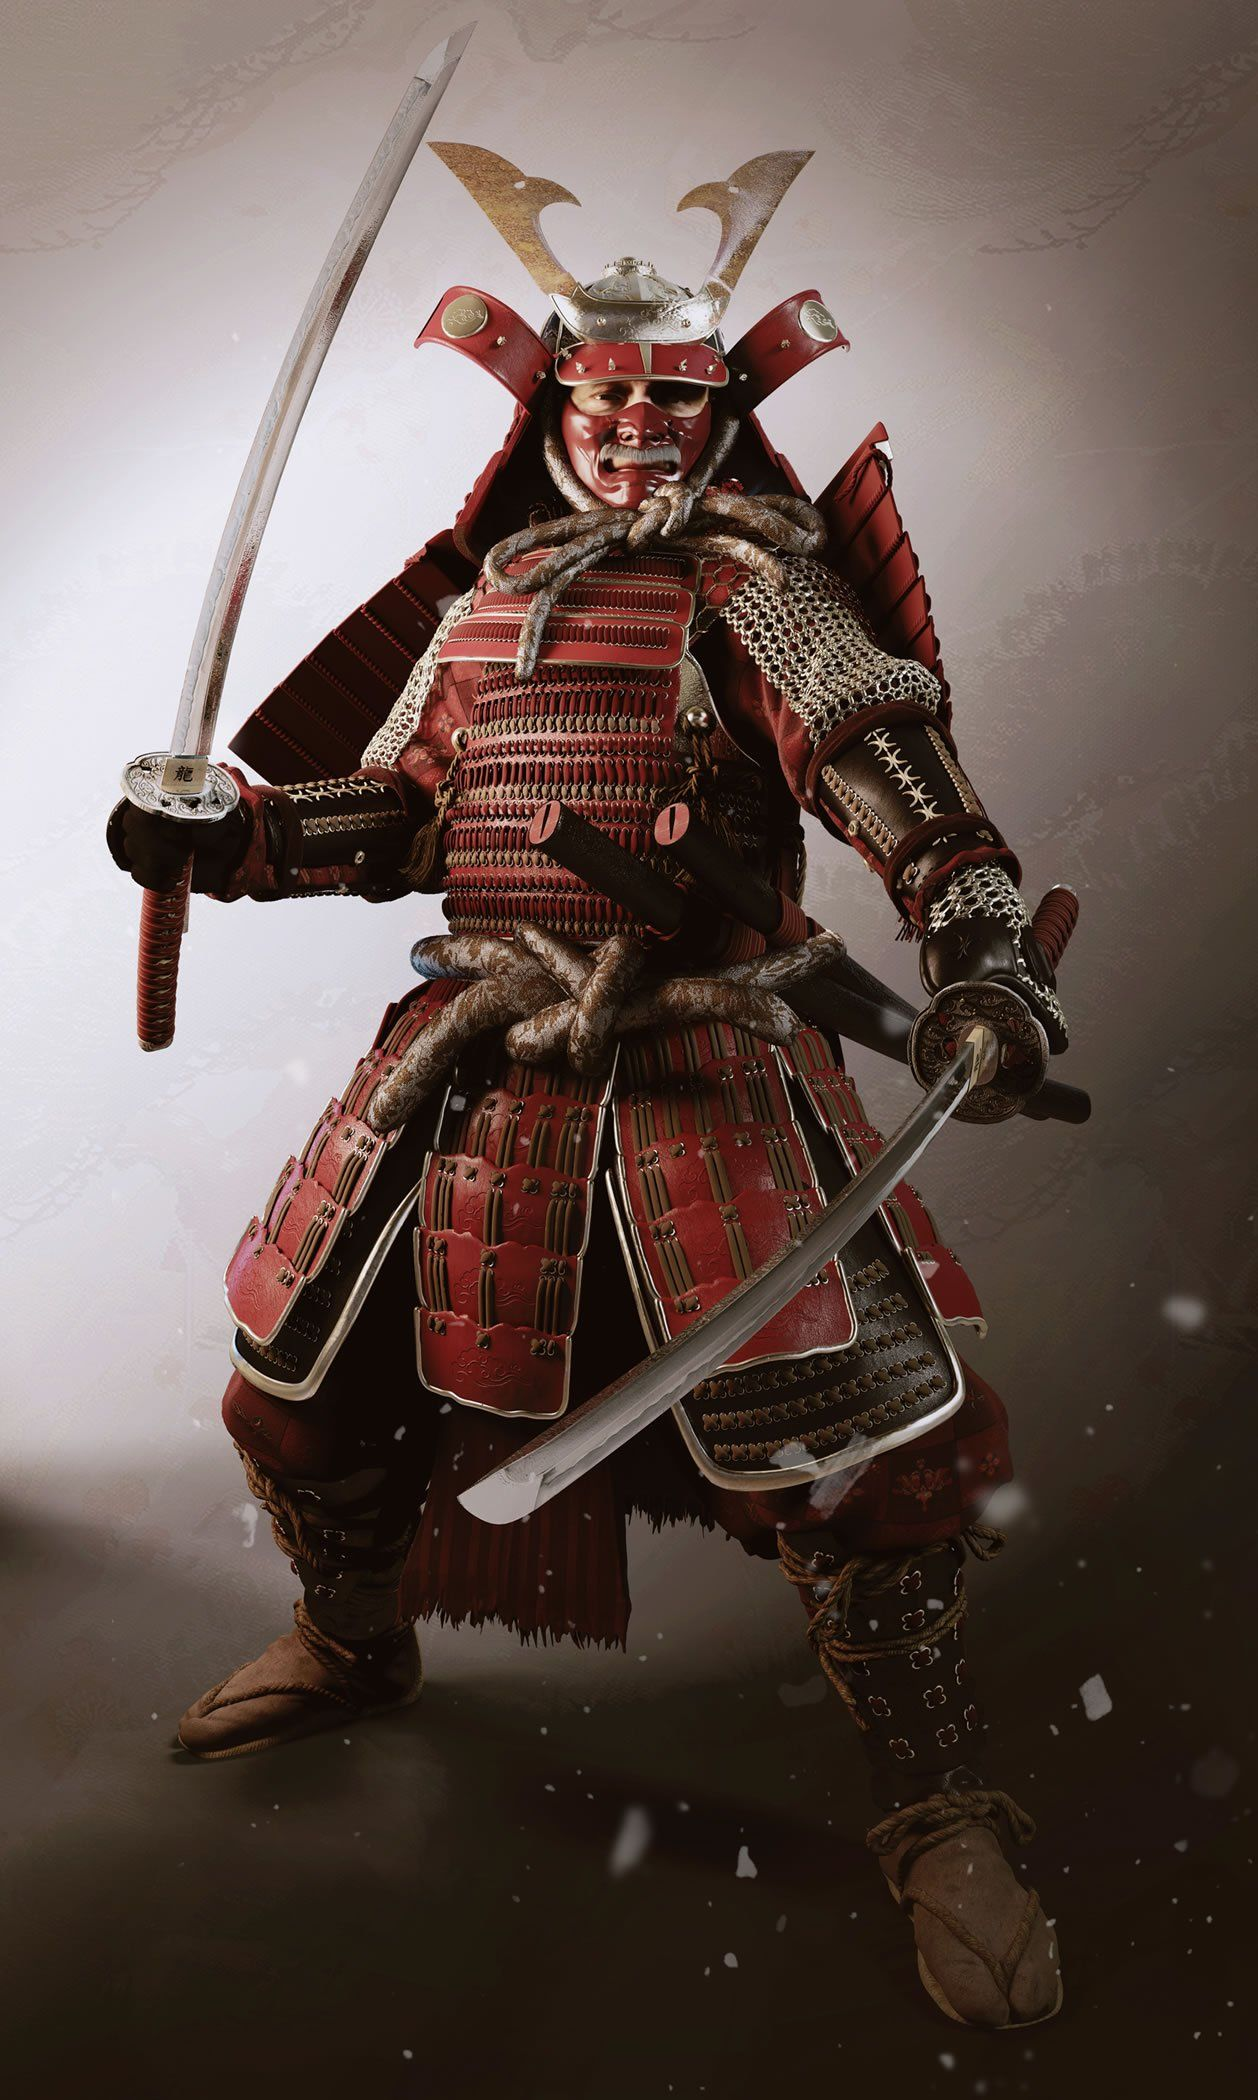 Картинки самураев (35 фото) ⭐ Забавник | Samurai armor, Samurai warrior, Japanese warrior